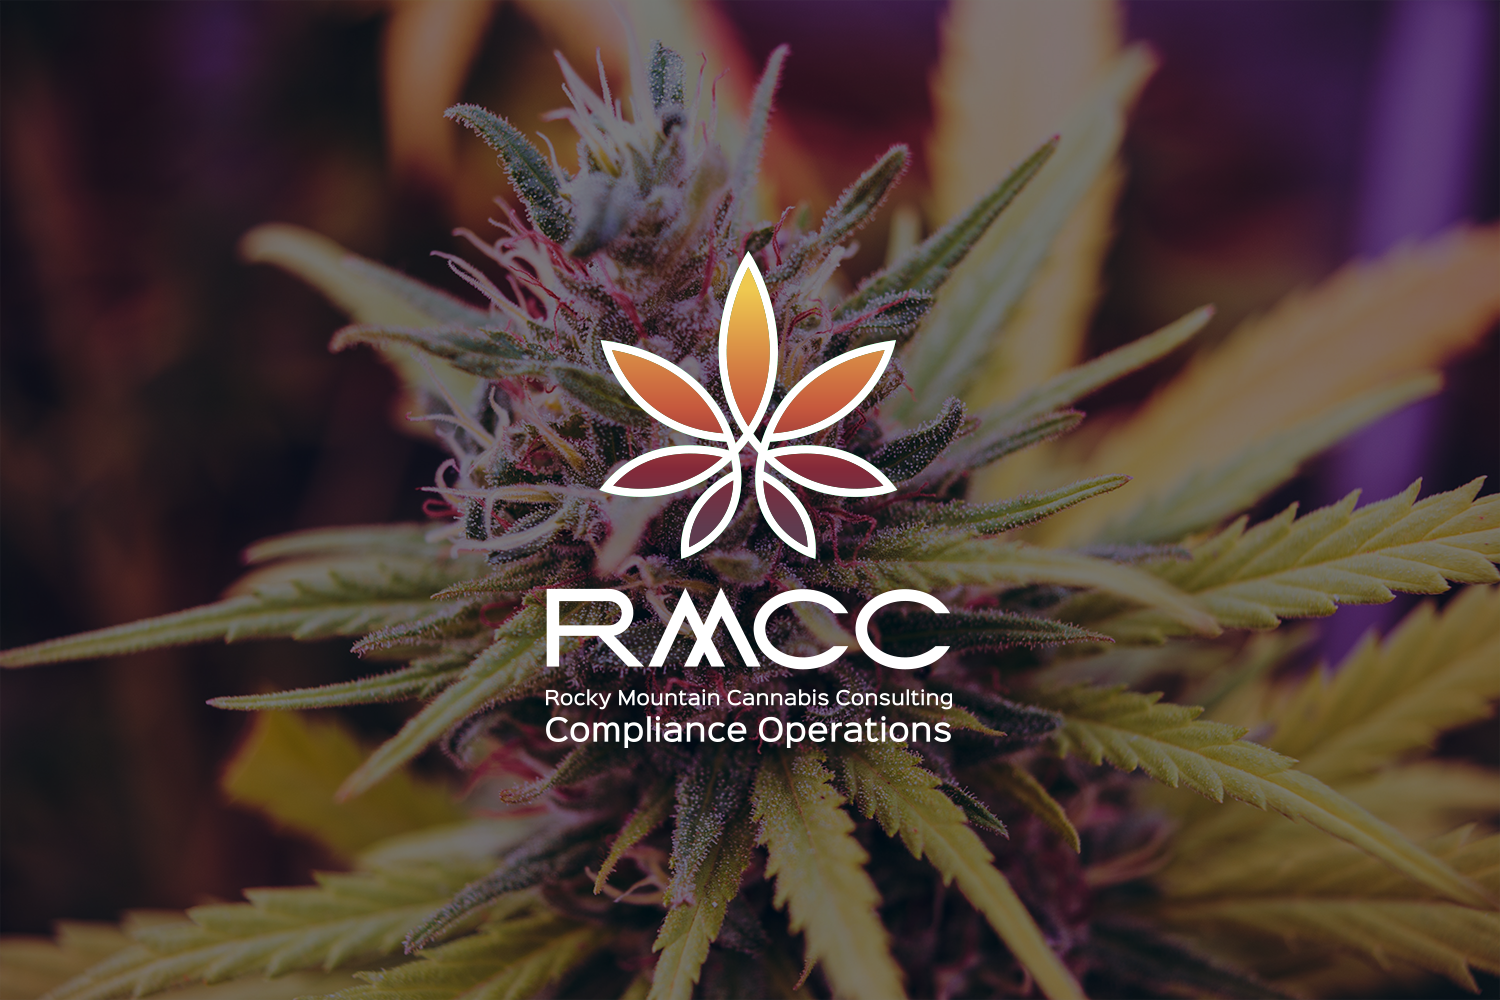 Rocky Mountain Cannabis Consulting Compliance Operations Experts